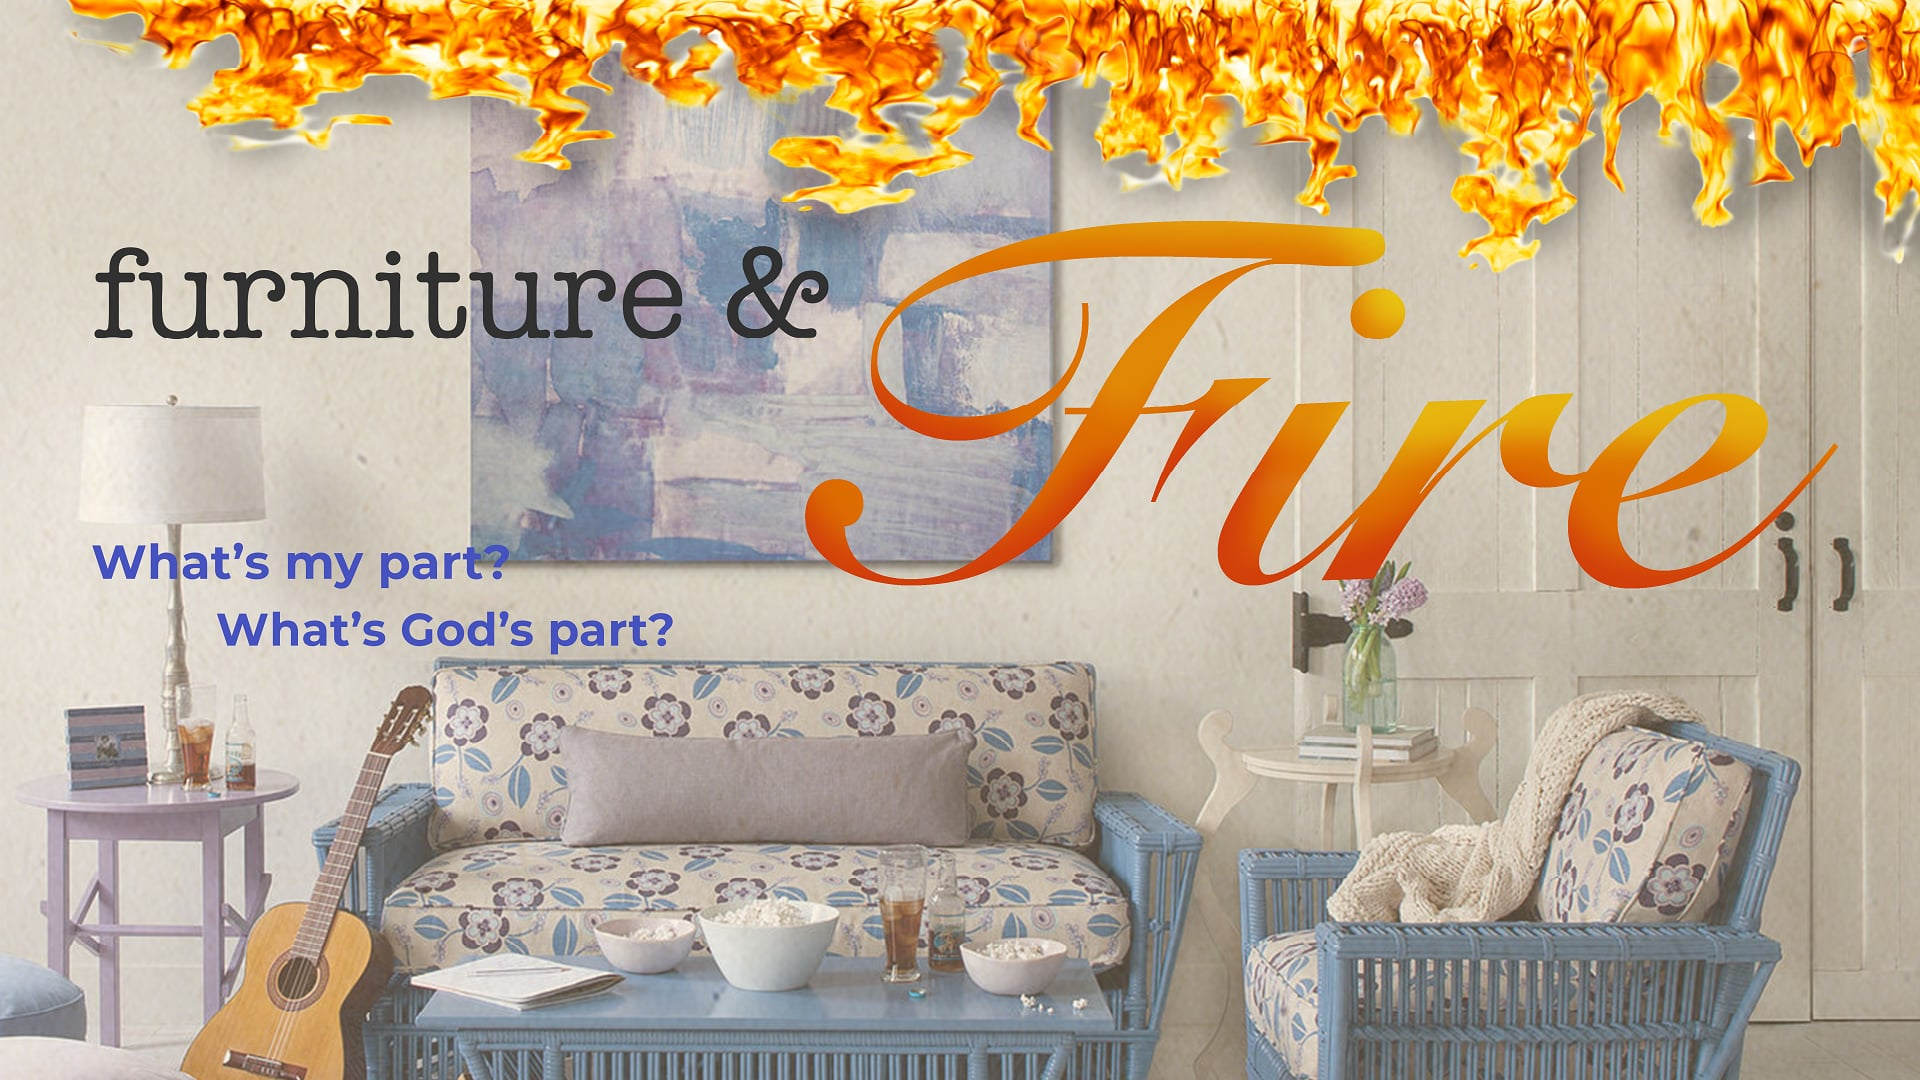 Furniture and Fire - Part 3